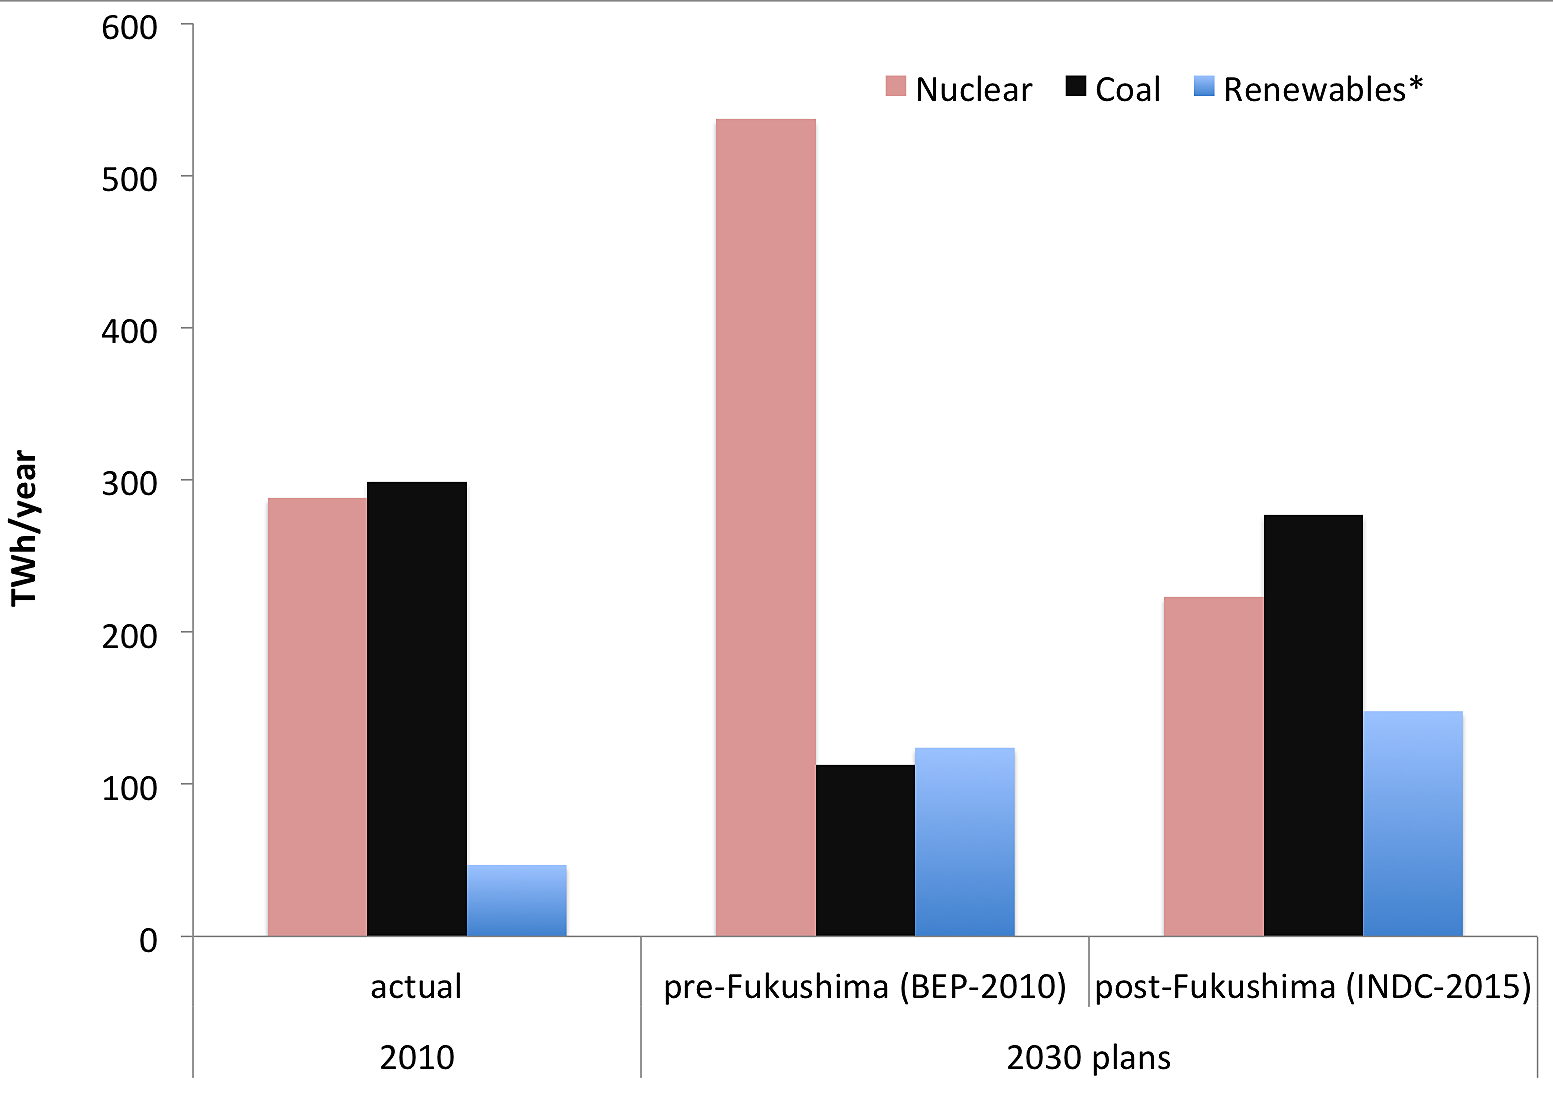 Nuclear, coal, and renewables (*excluding hydro) in electricity production in Japan.    Sources:    IEA World Energy Balances  (2010).  Duffield and Woodall (2011)  and  METI (2010 ) (for pre-Fukushima).  METI (2014)  and  Japan's Intended Nationally Determined Contribution (INDC,2015)  (for post-Fukushima).